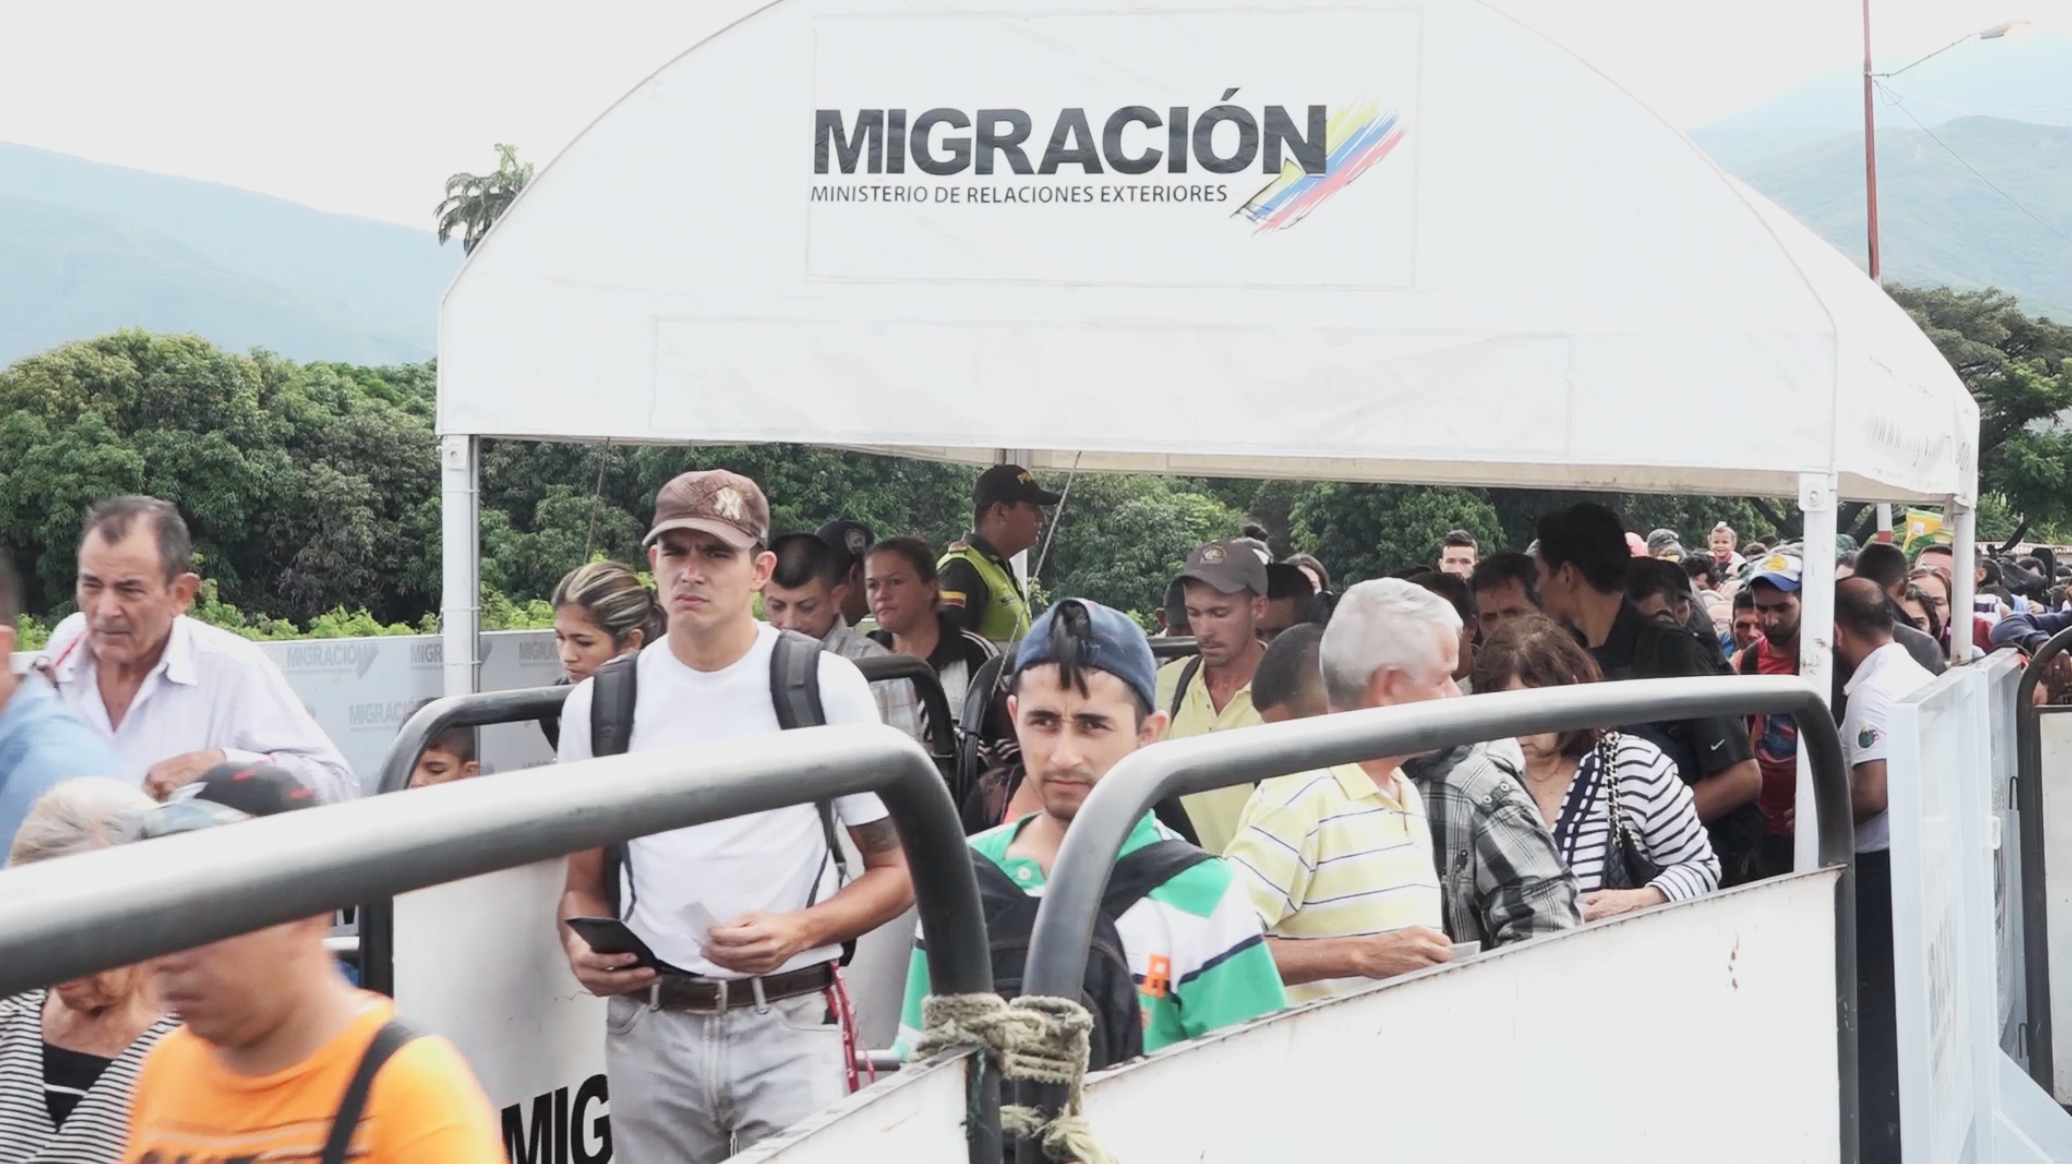 Venezuelans cross the border into Colombia under a sign that reads